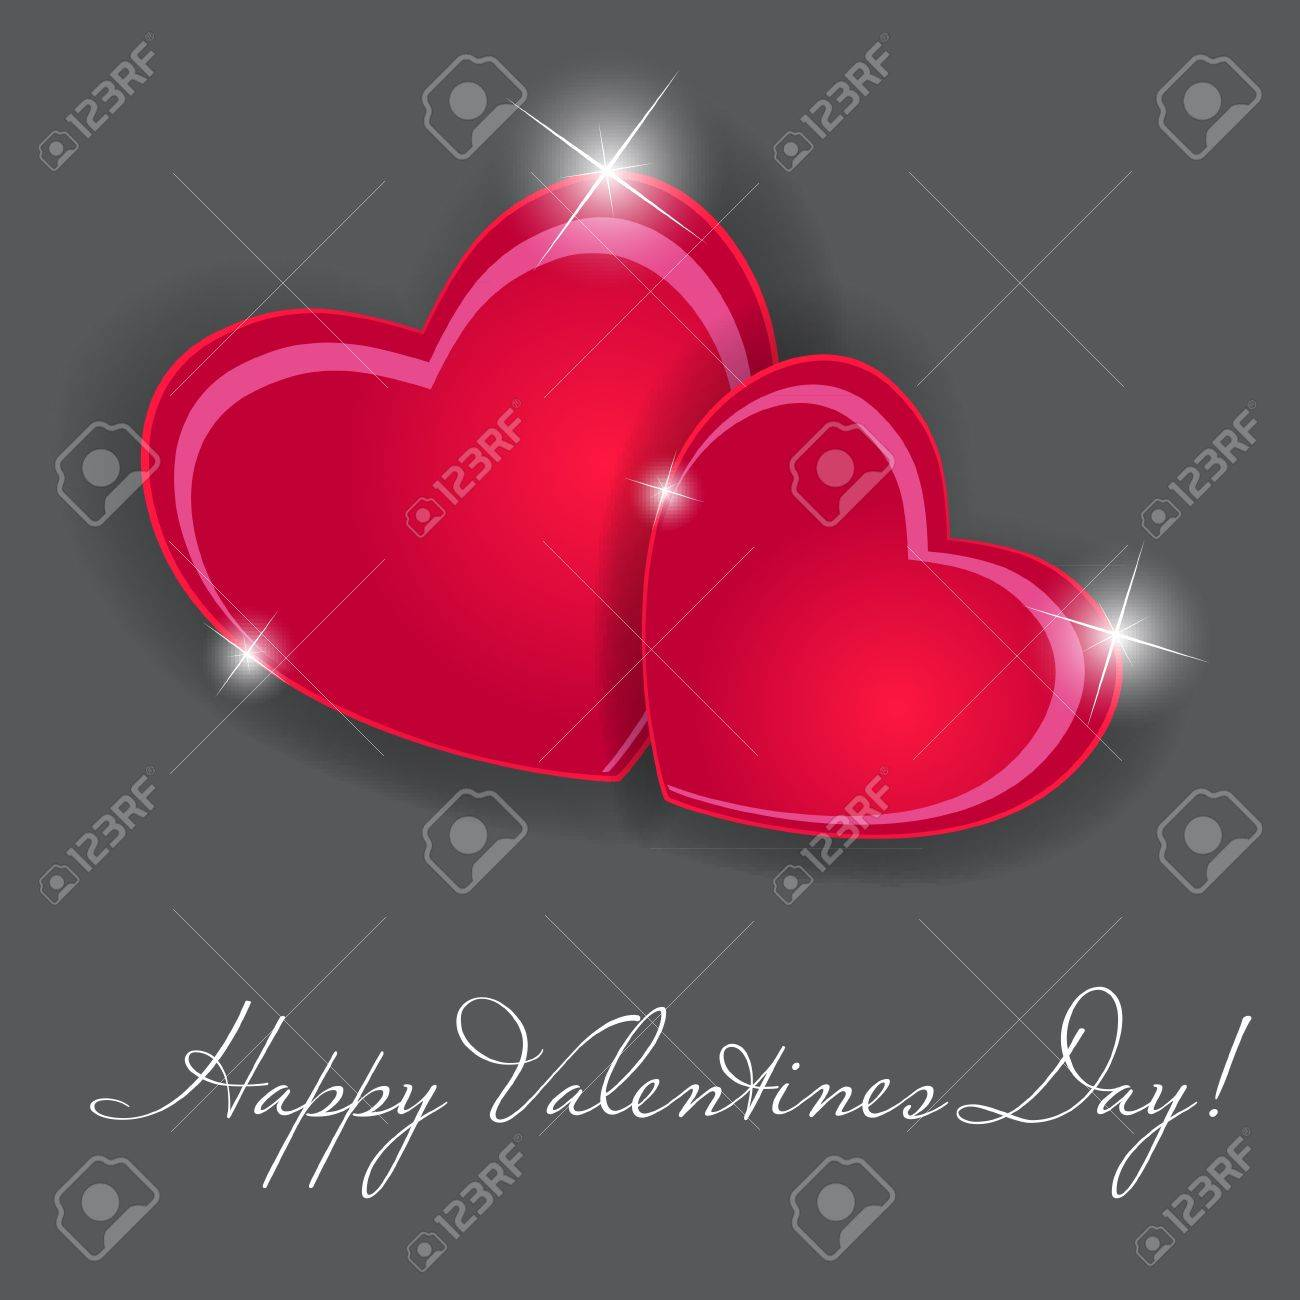 Happy Valentines Day card with heart Stock Vector - 20831313